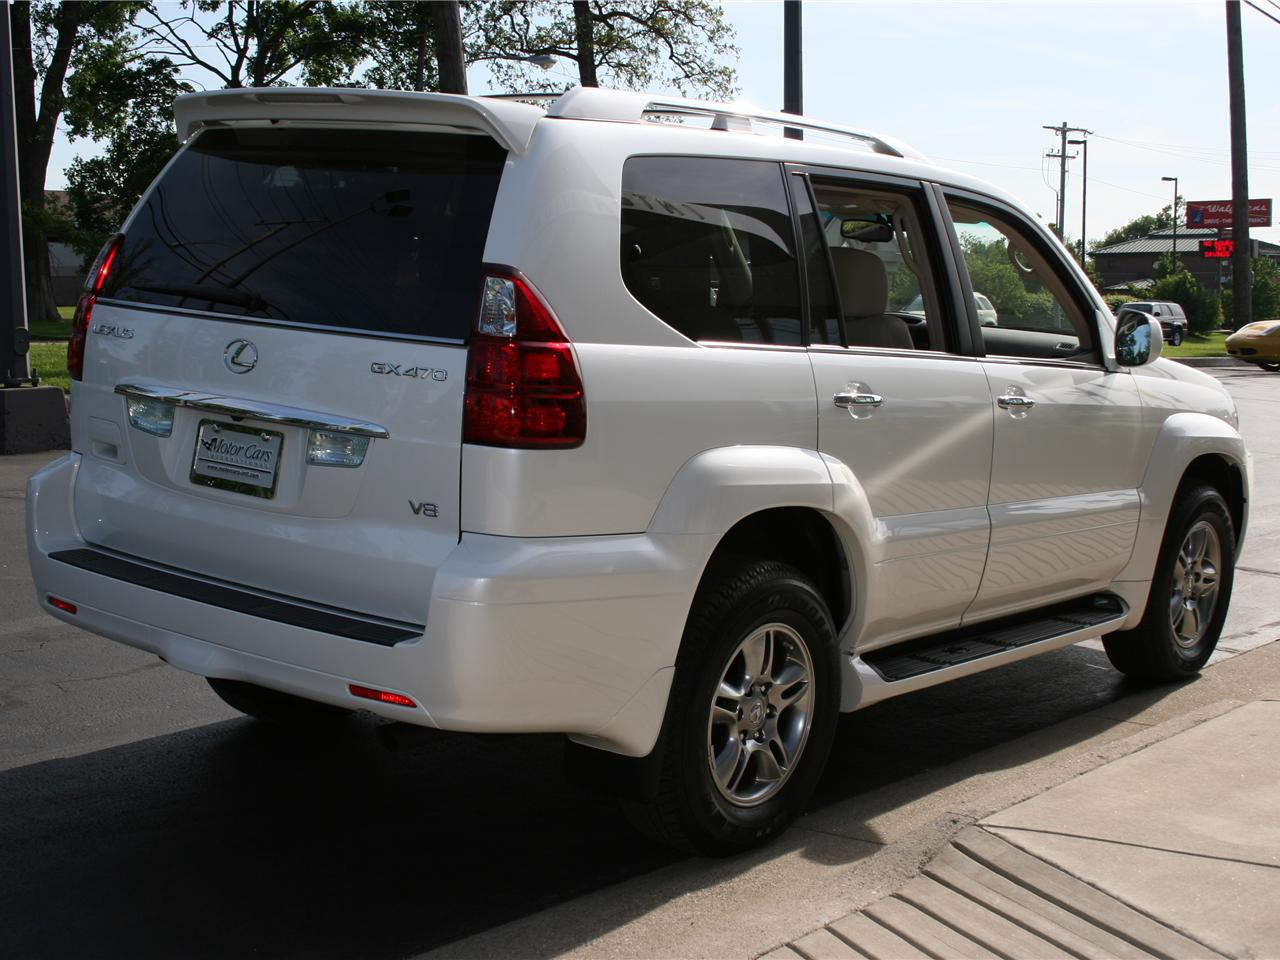 2008 Lexus GX 470 - Information and photos - ZombieDrive